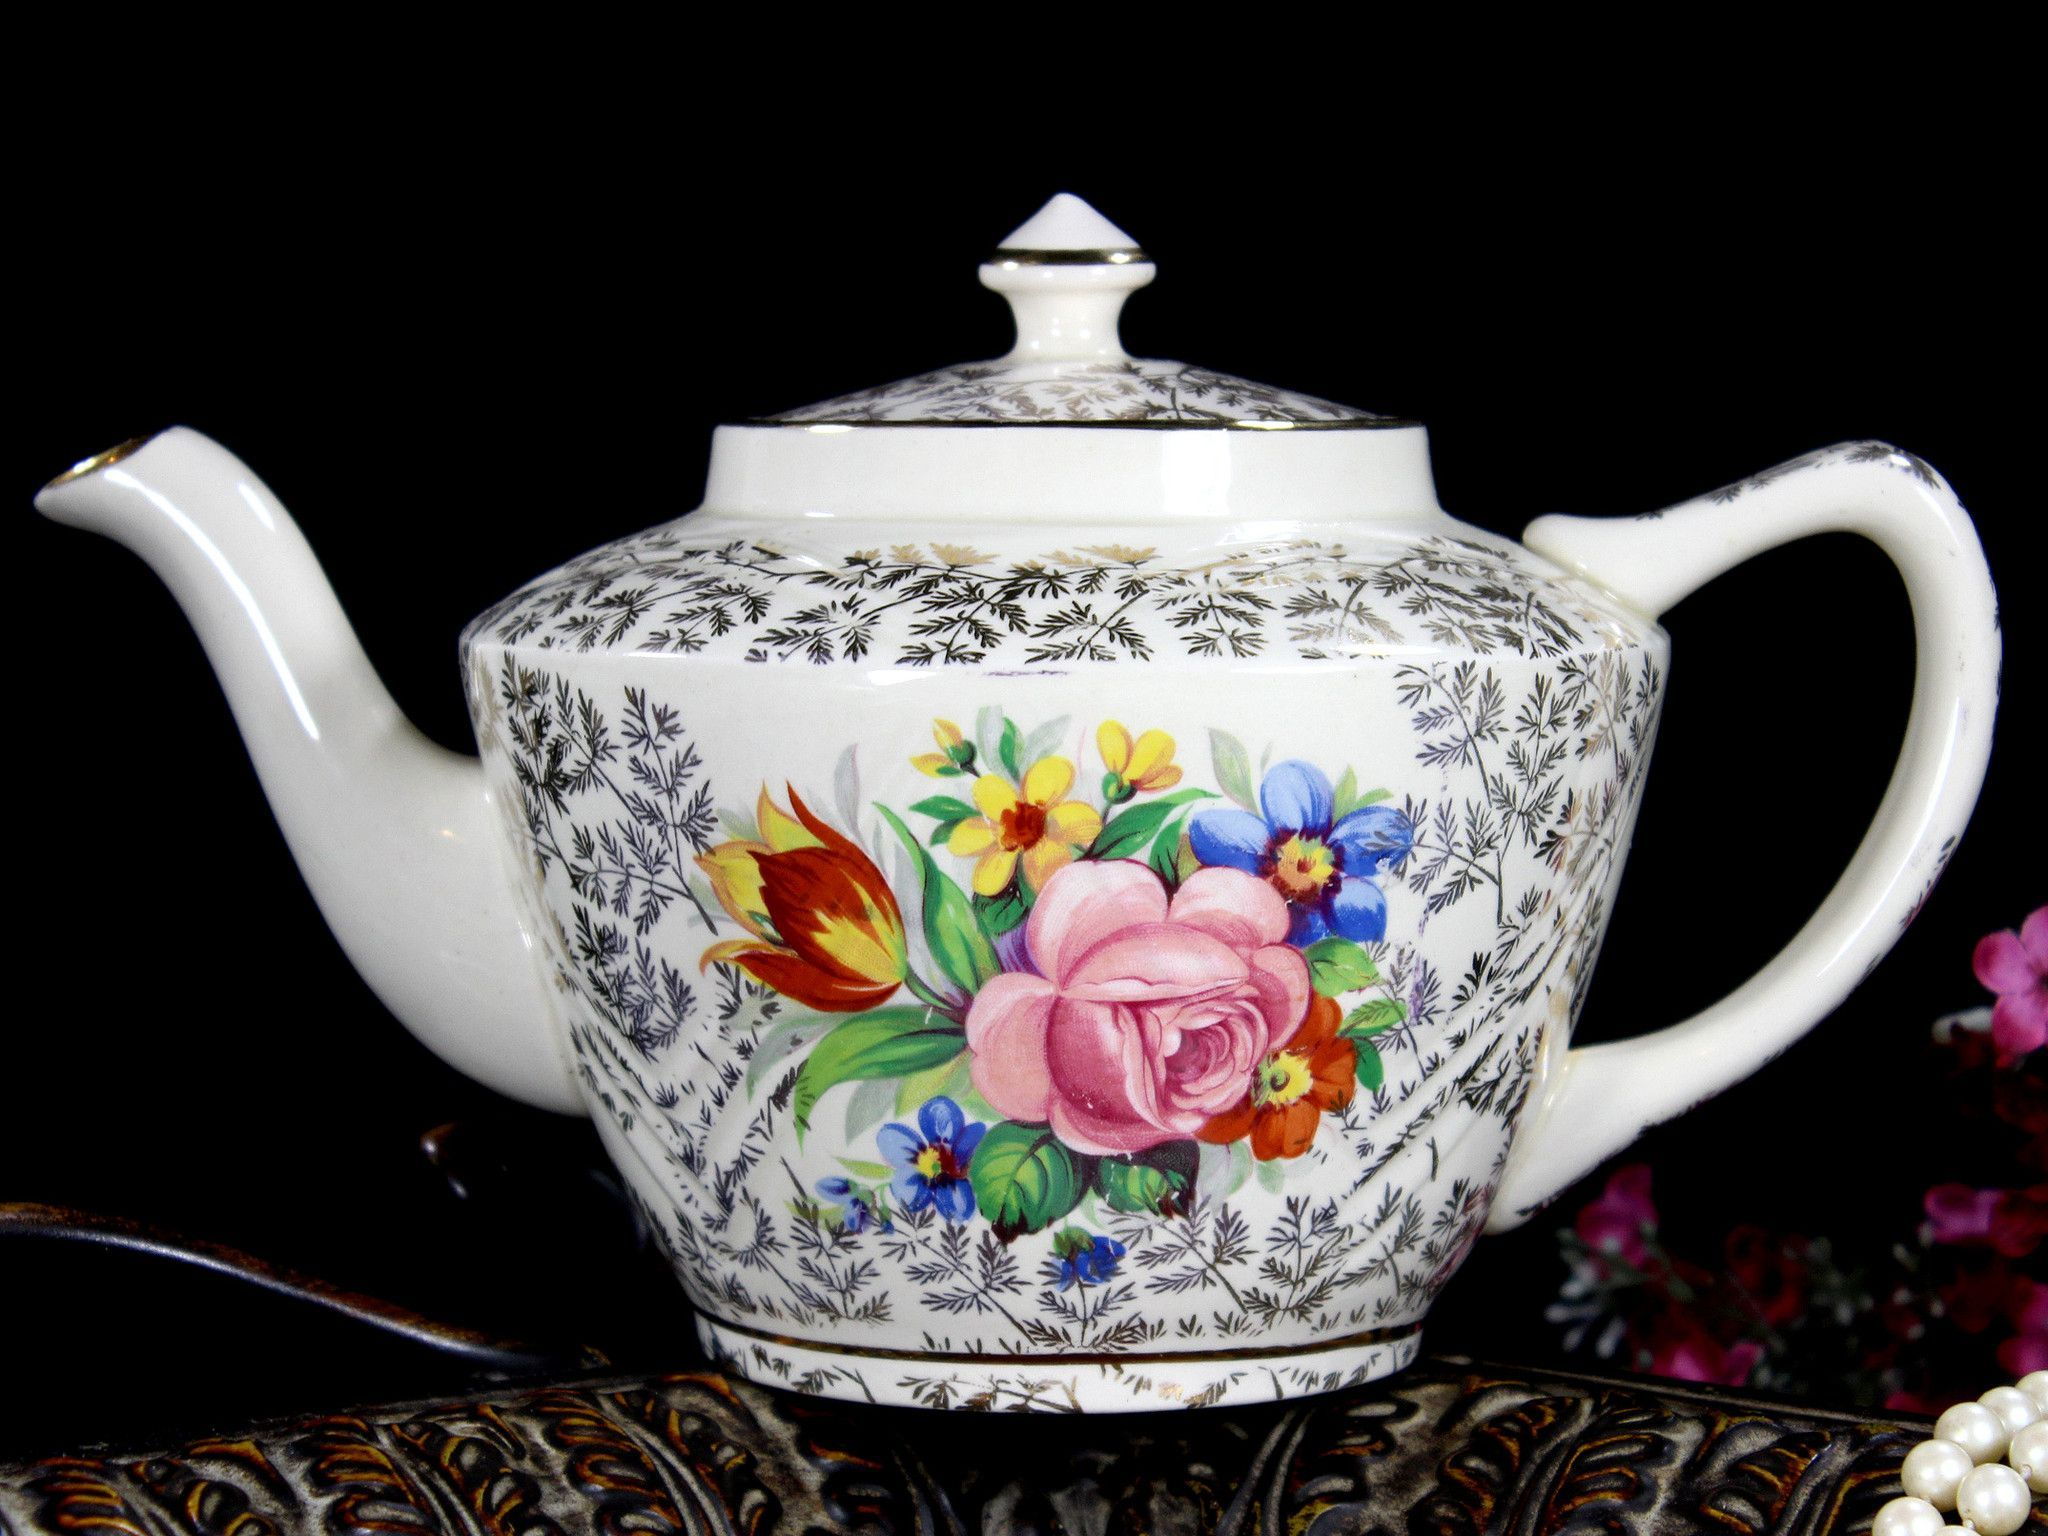 Rare Sadler Gilt Chintz Teapot, 4 Cup Sadler Porcelain Tea Pot. Vintage Sadler England Ceramic Floral Tea Pot w/ Gold Fern Pattern Gilt. This pot features bright oranges, yellows, and browns in a flor